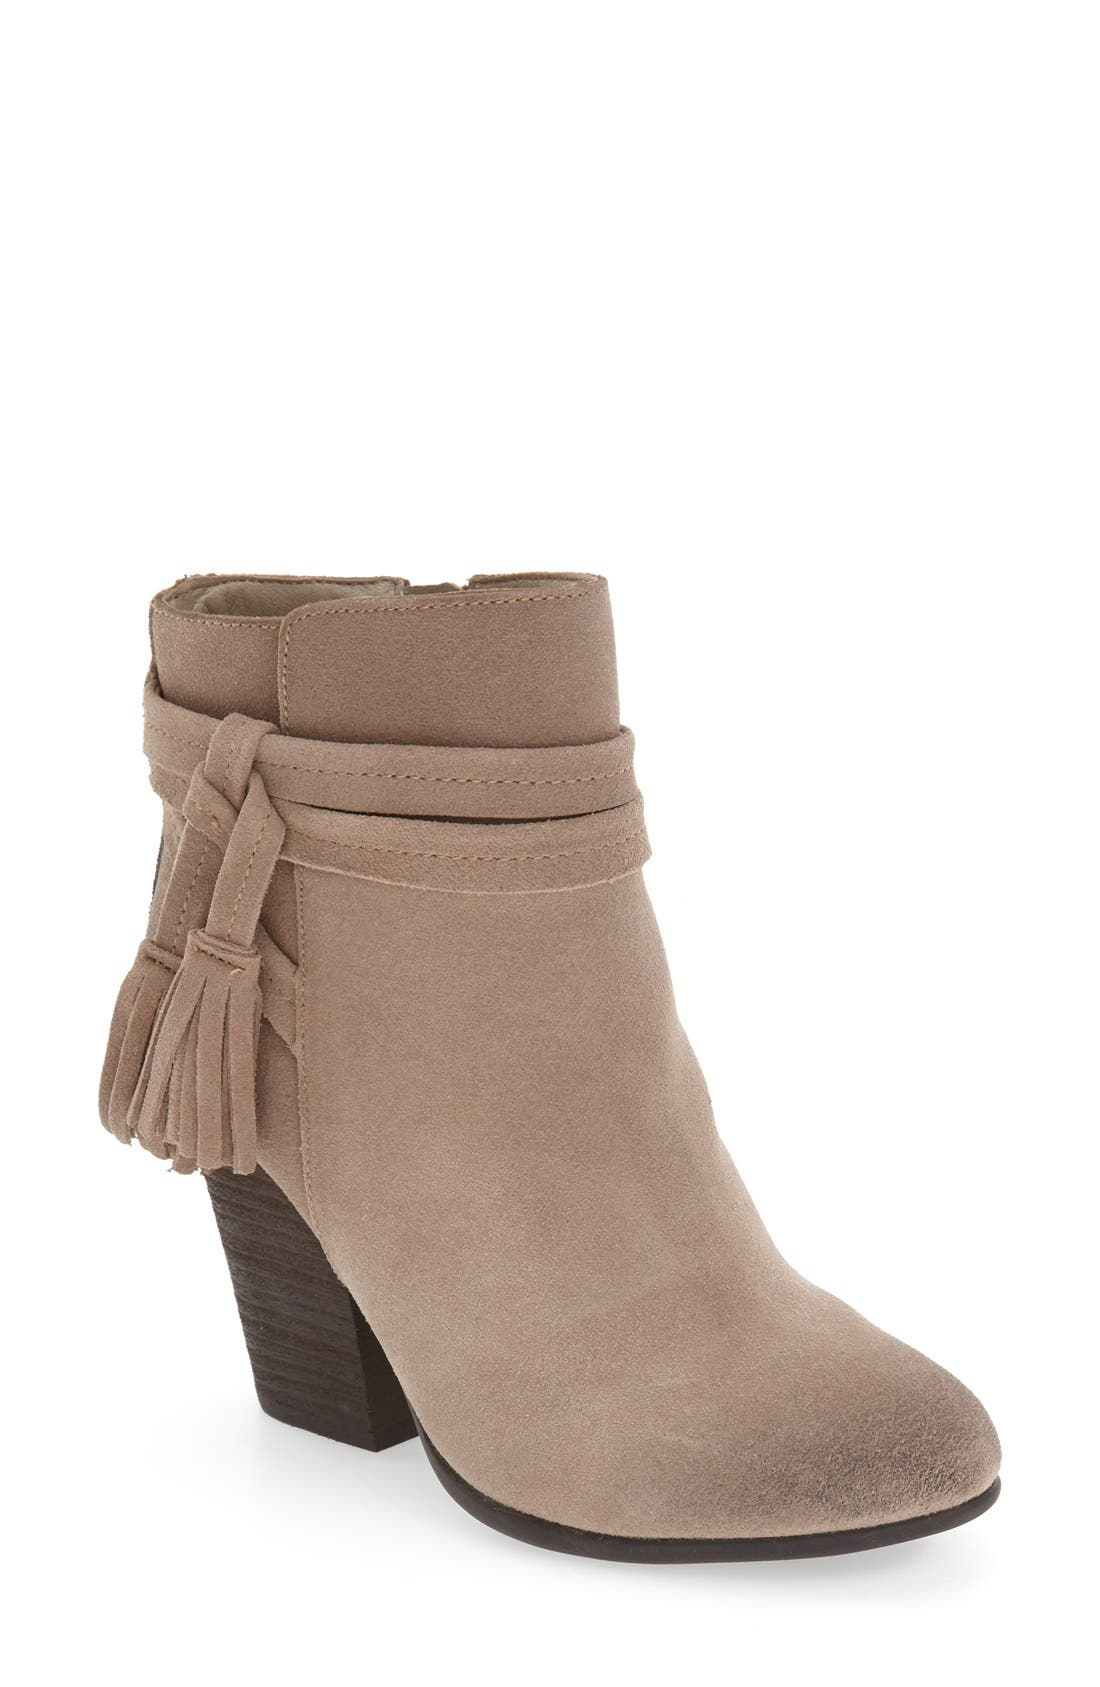 Main Image - Very Volatile 'Enchanted' Tassel Detail Bootie (Women)